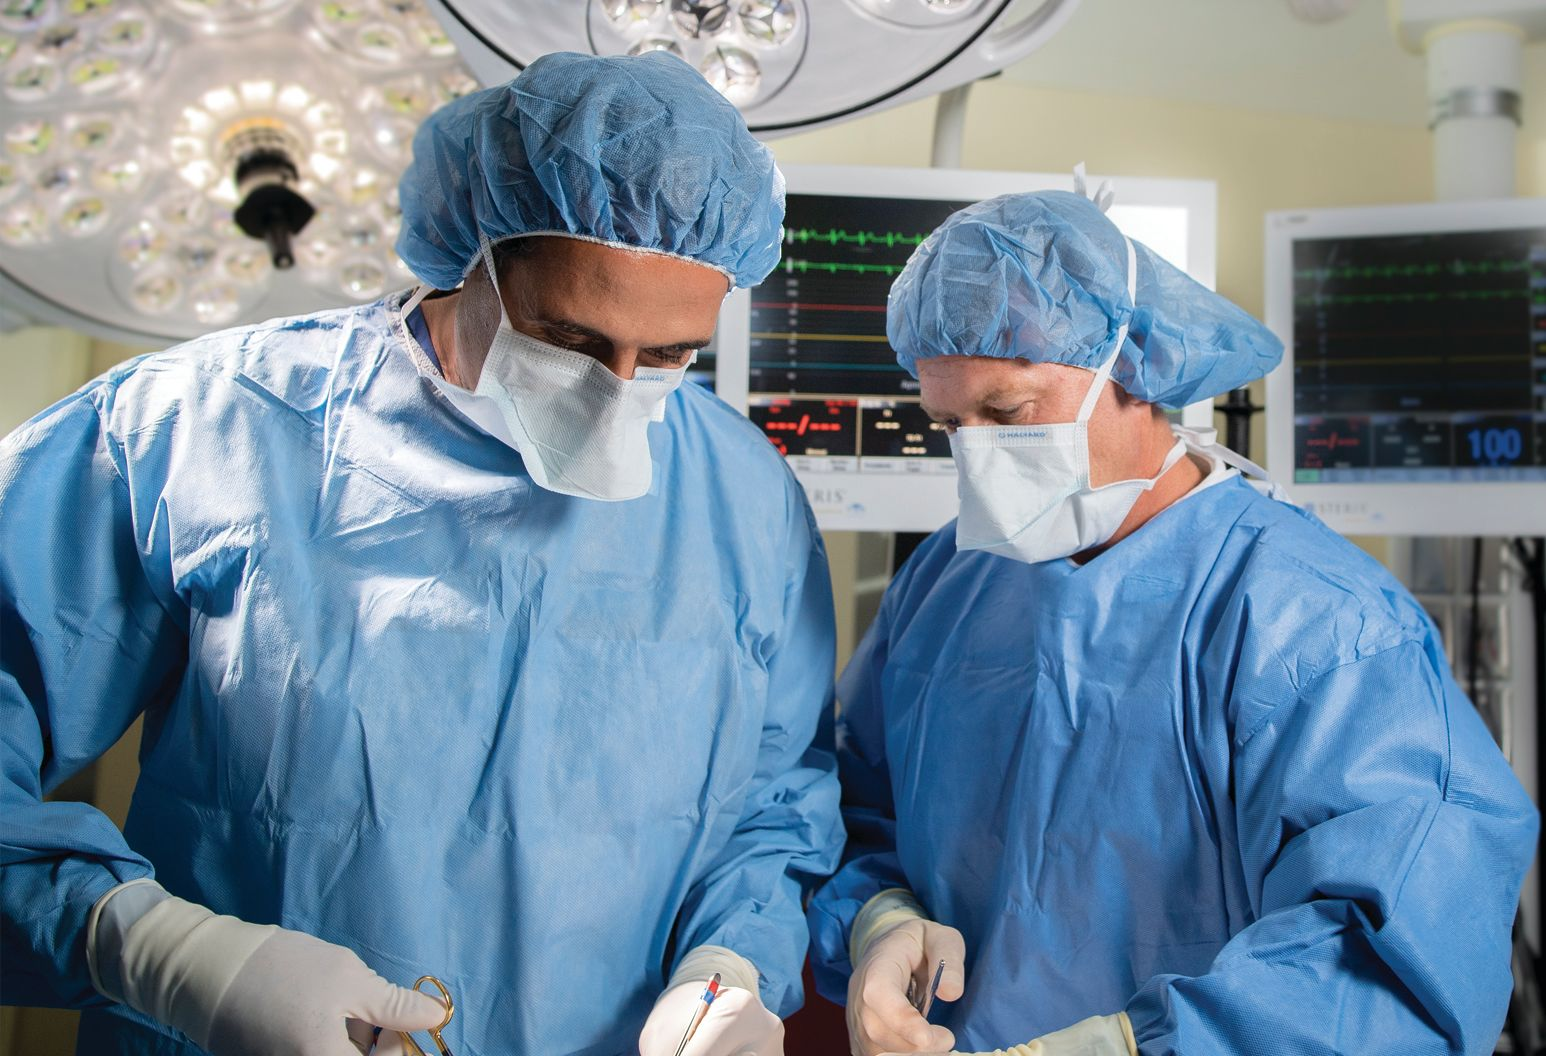 Two surgeons work diligently on a patient in the operating room.